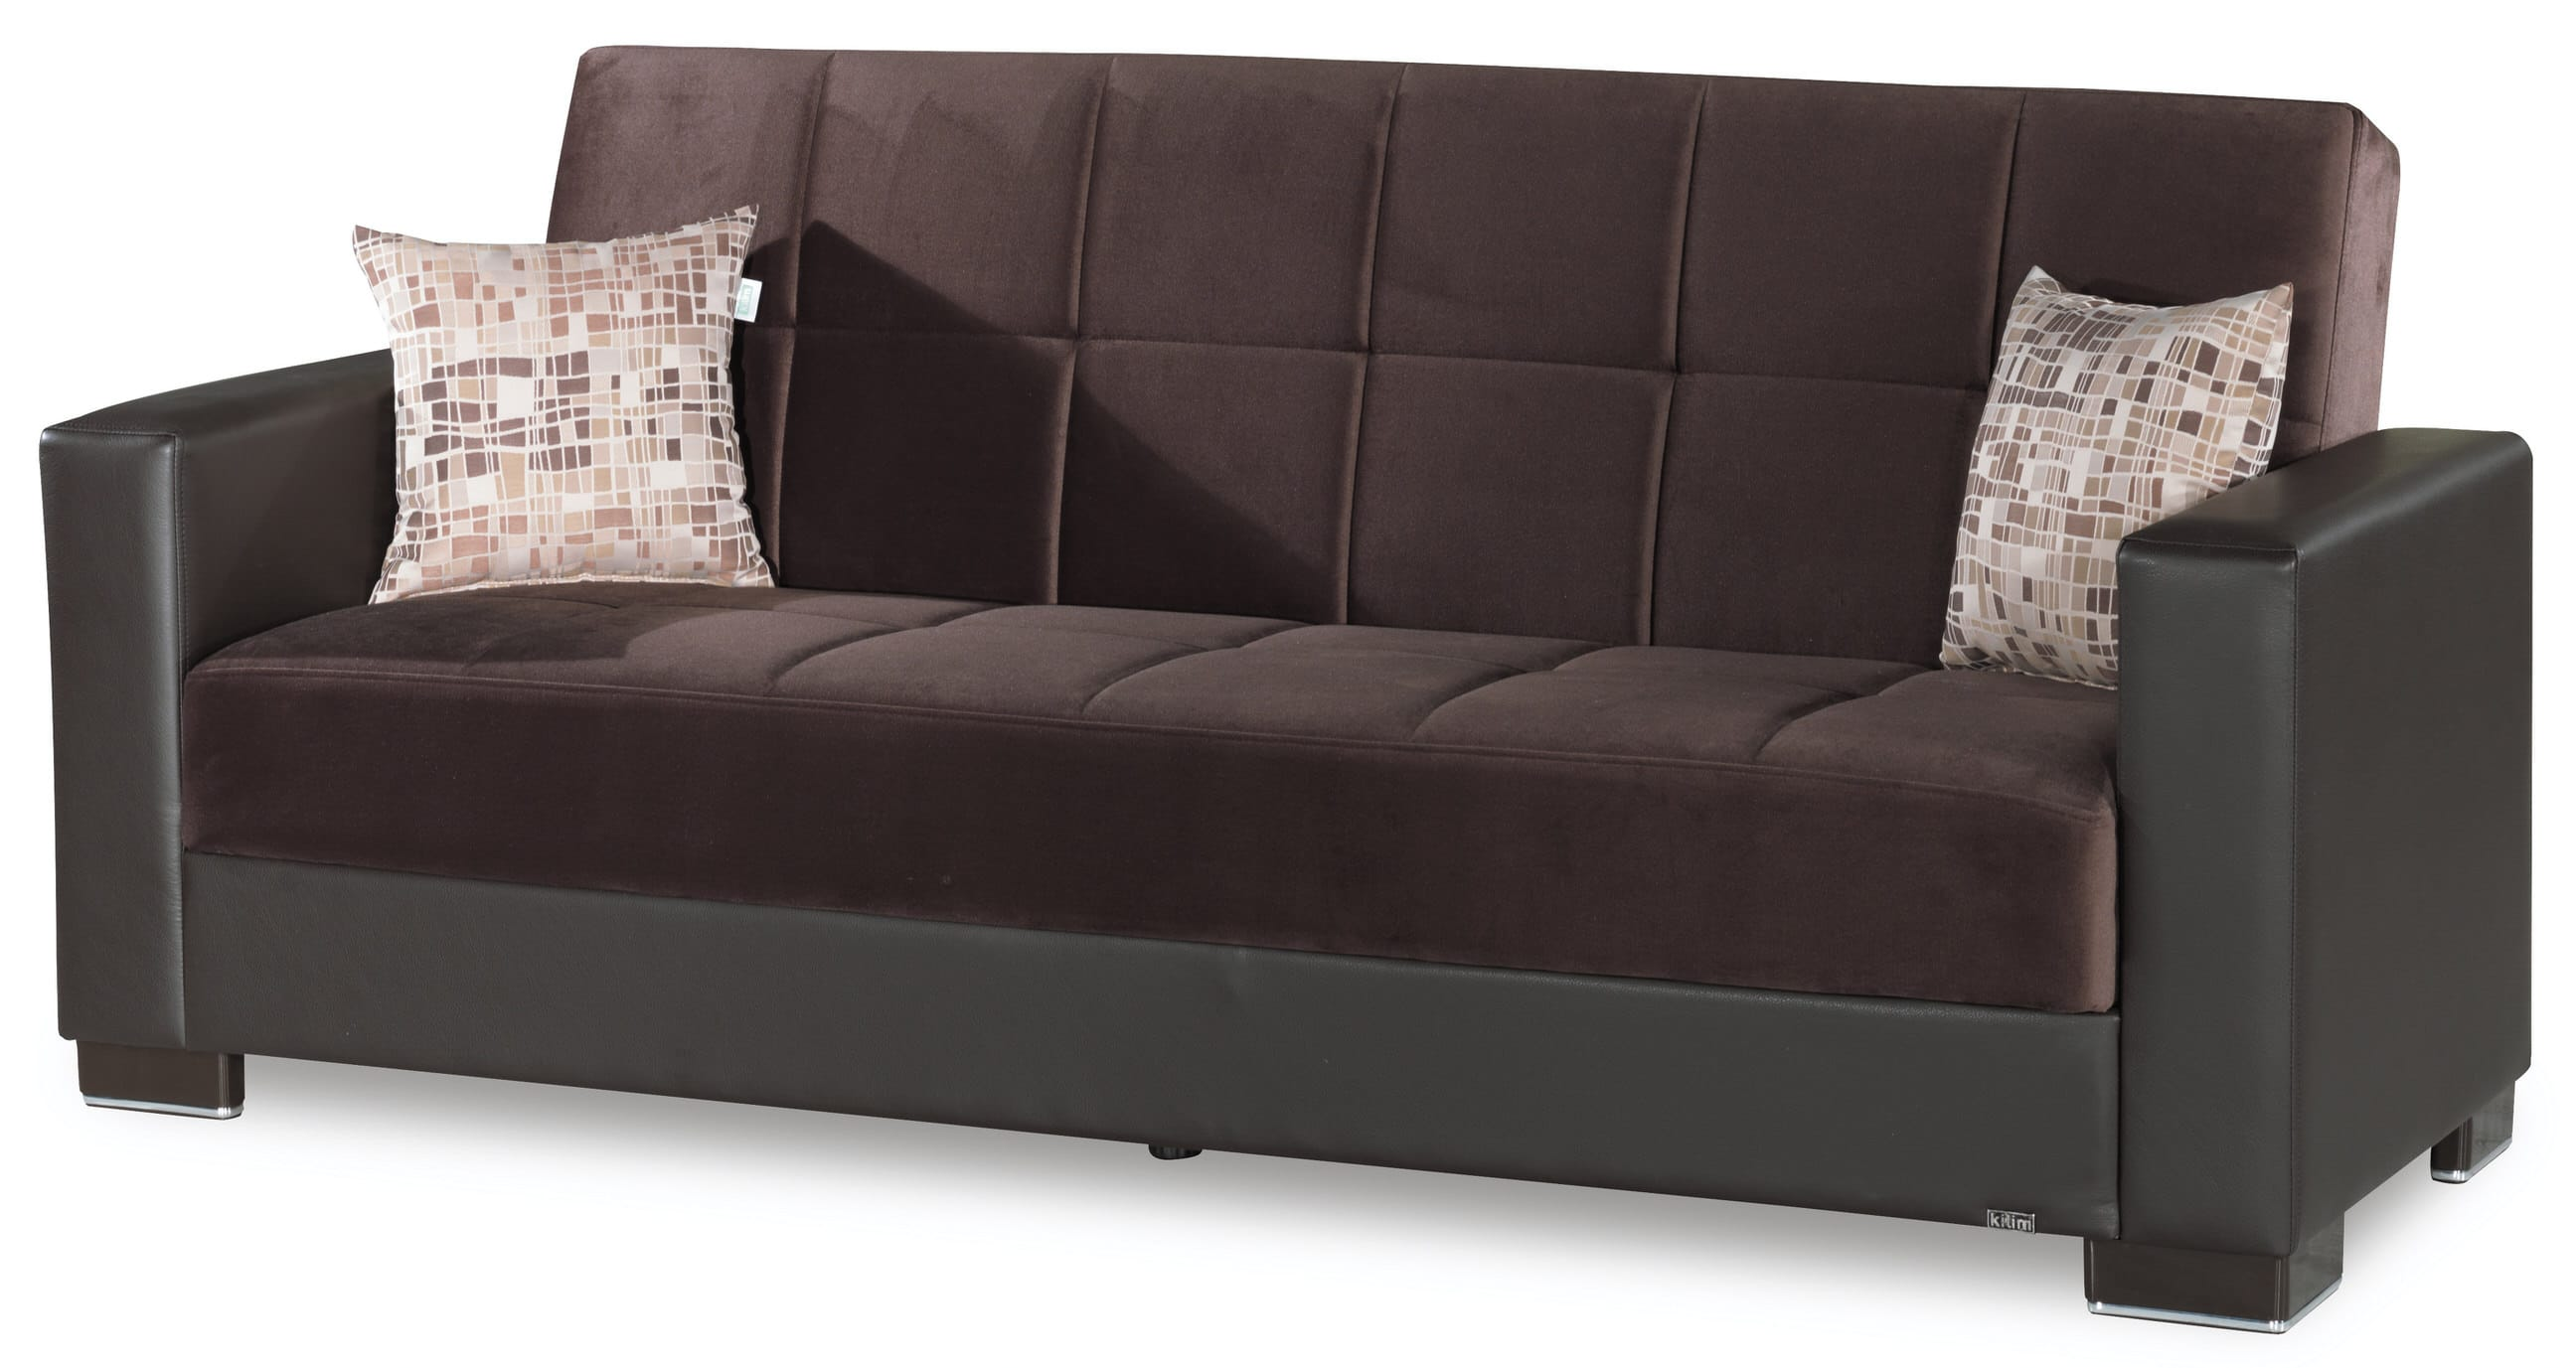 Phenomenal Armada Dark Brown Sofa Bed By Casamode Creativecarmelina Interior Chair Design Creativecarmelinacom